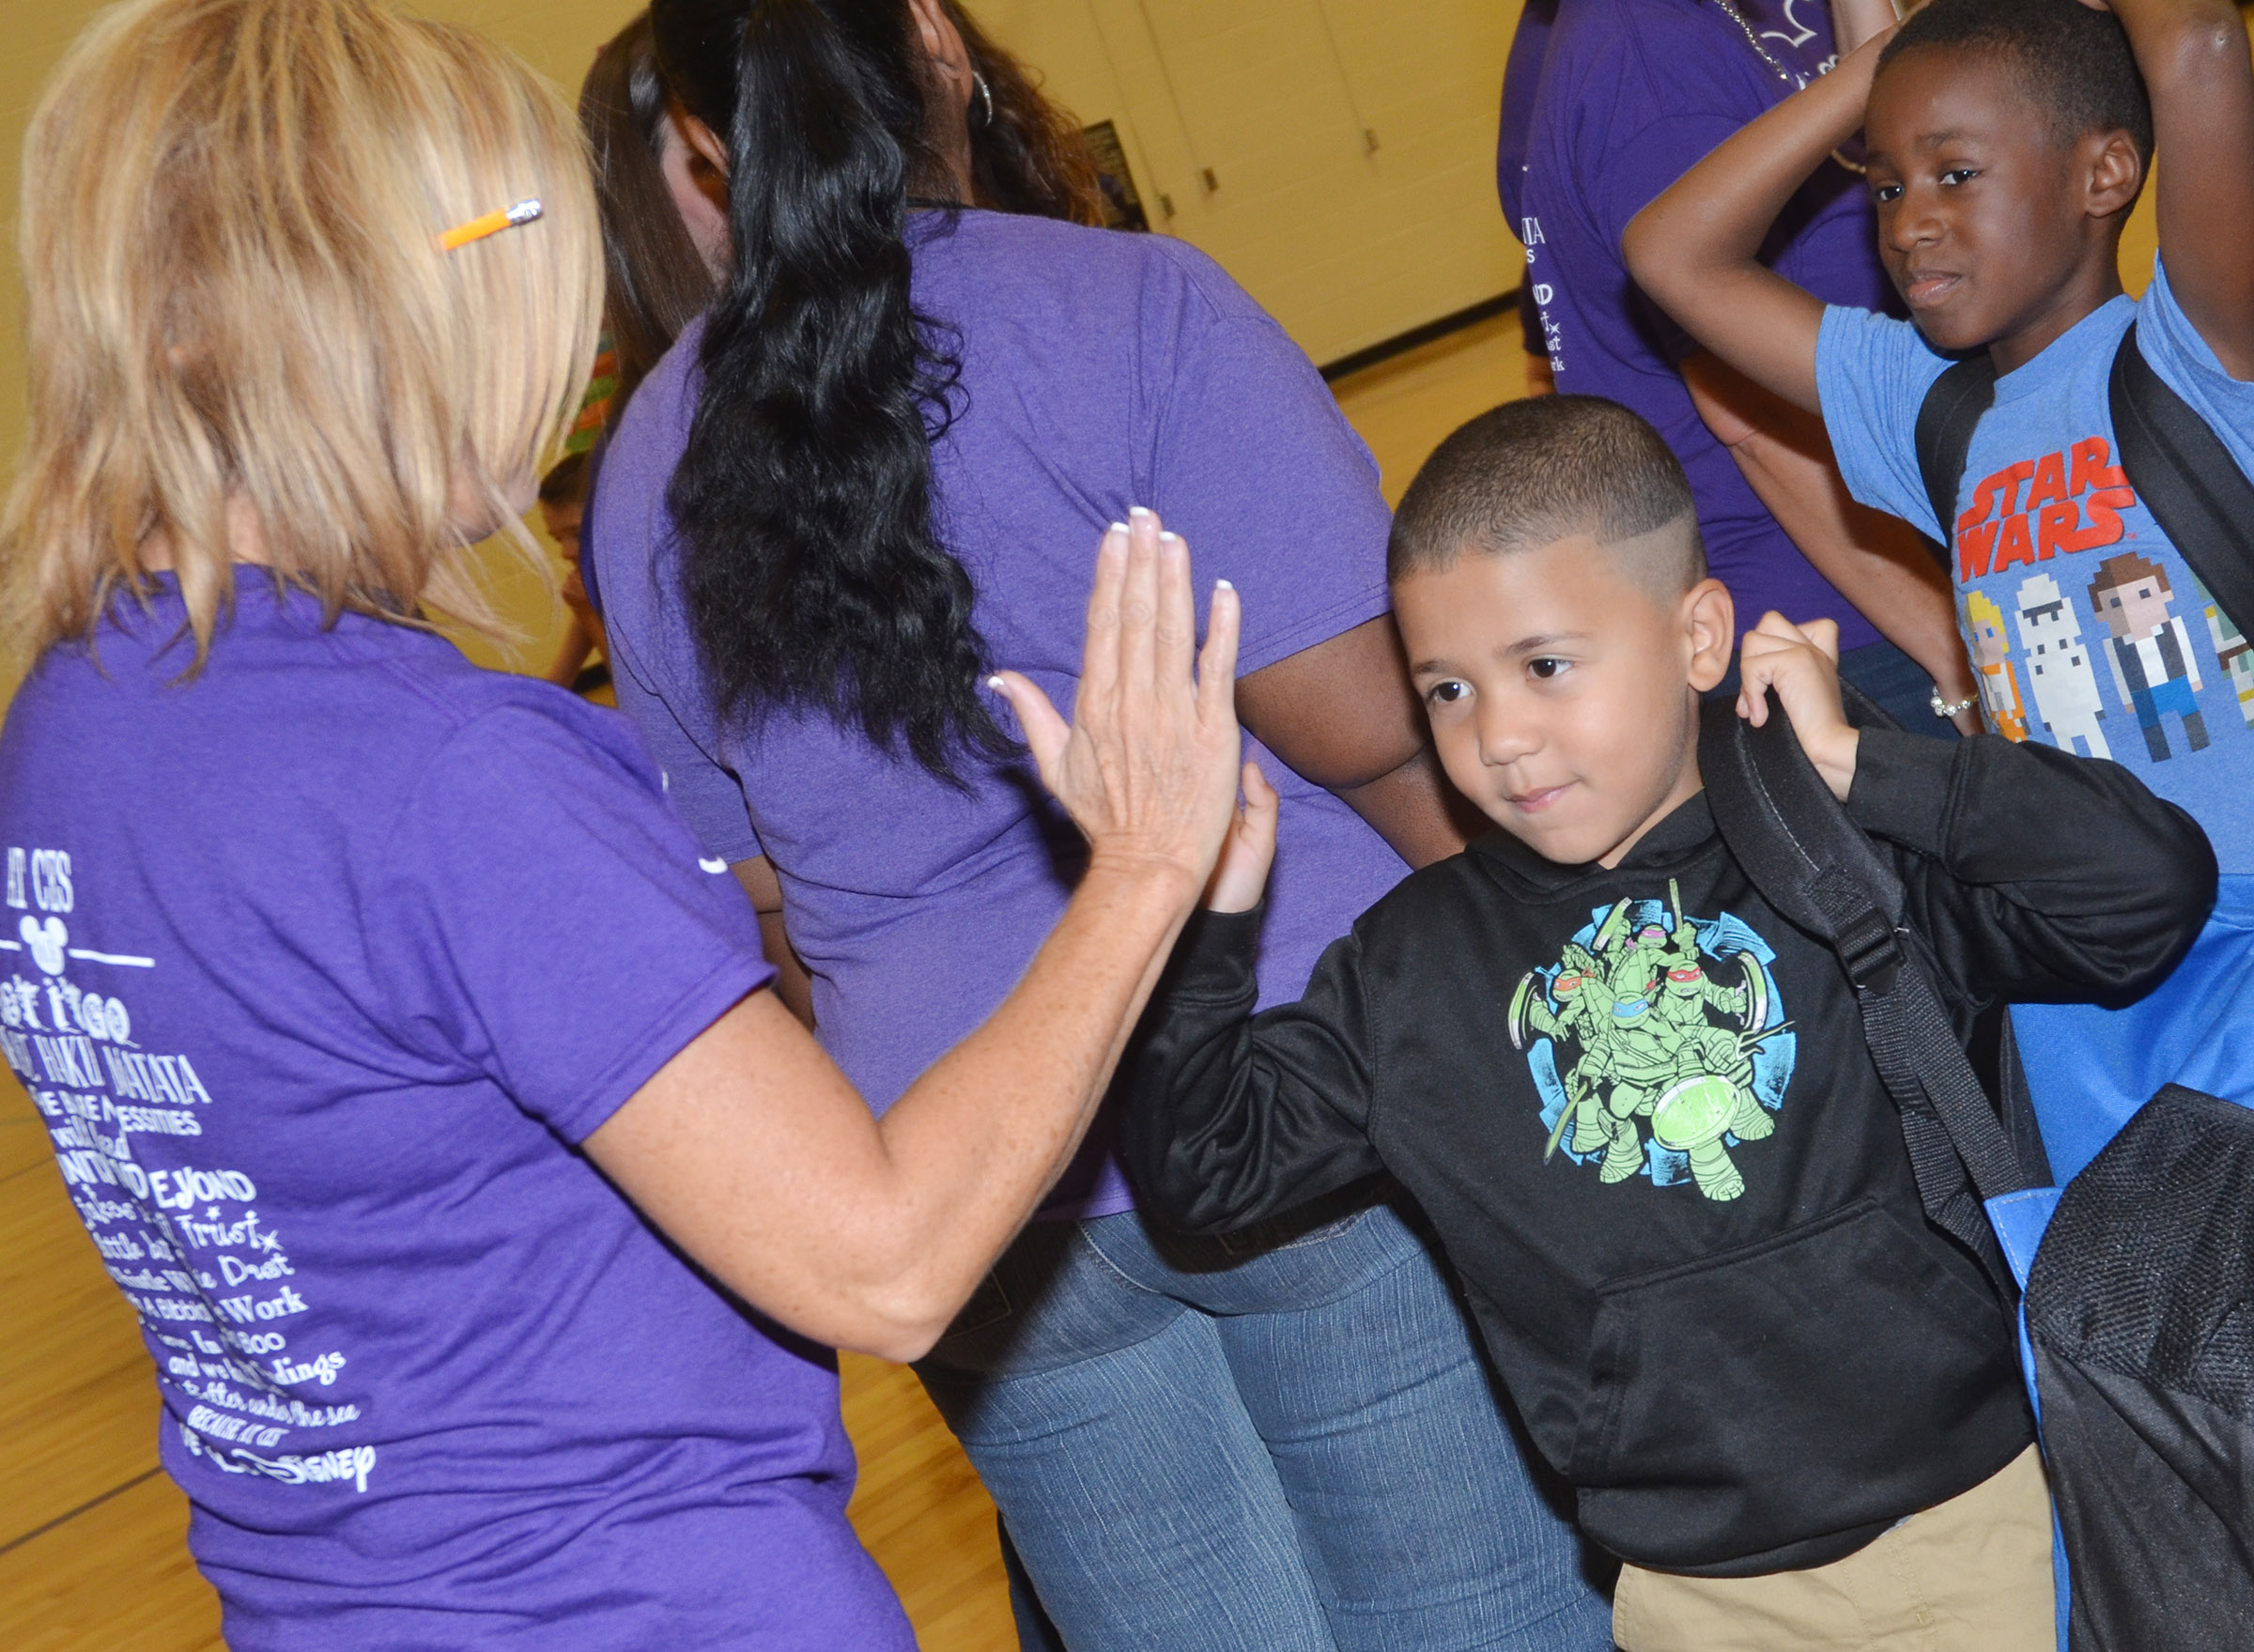 CES teacher Lisa Wiseman high-fives former student Ahryan Wilson, who is a first-grader.